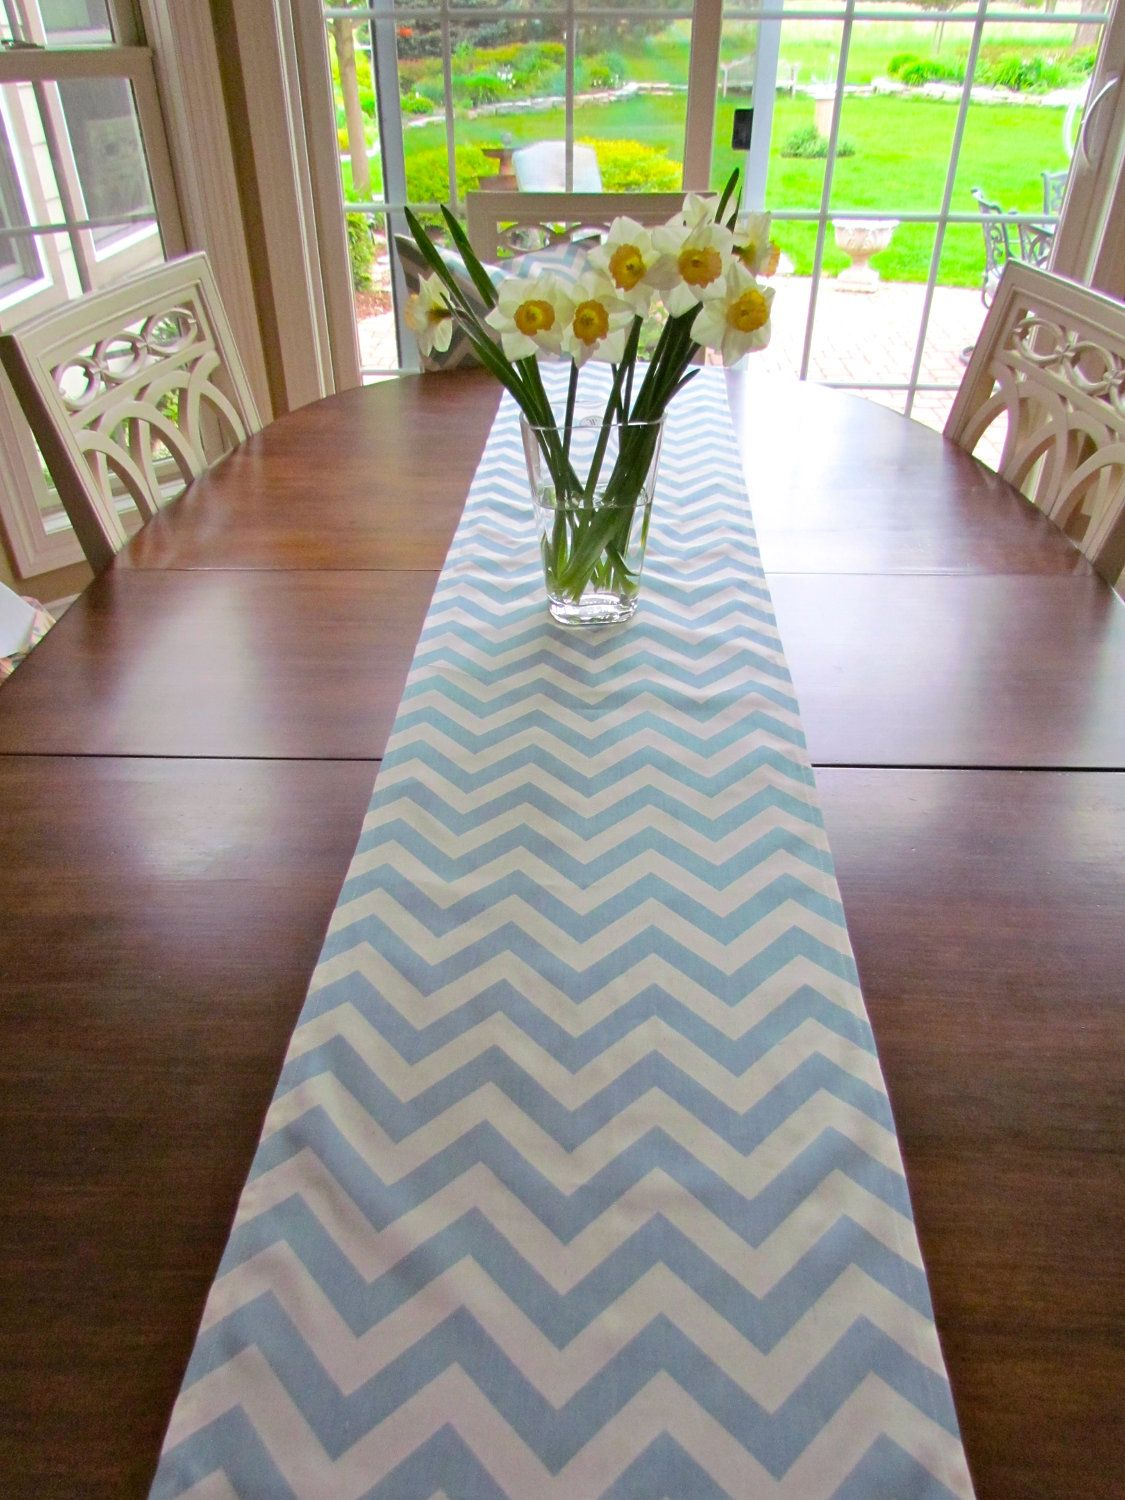 spa blue table runner wedding showers 13 x 72 chevron table runners holiday party table cloth decorative blue baby shower via etsy baby shower ideas for